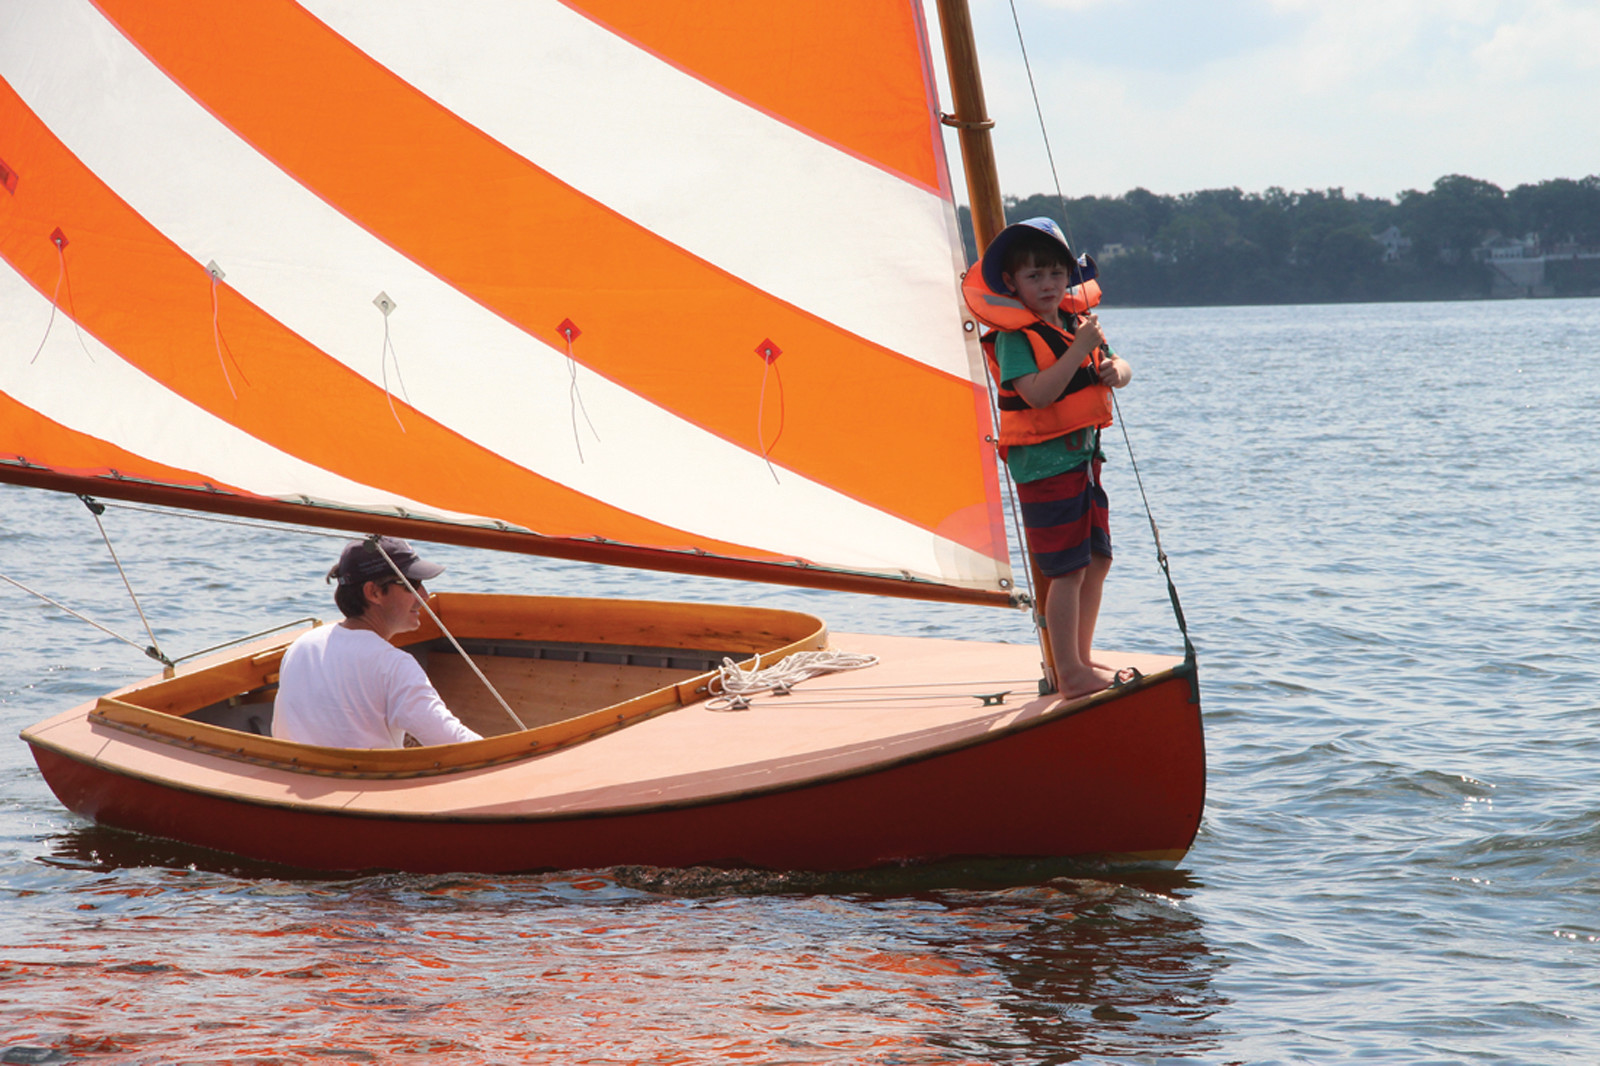 FIRST MATE: Tim Fallon and his 5-year-old son Ben sailed their Beetle Cat Reminder to a first place finish in the weekend regatta hosted by Edgewood Yacht Club.